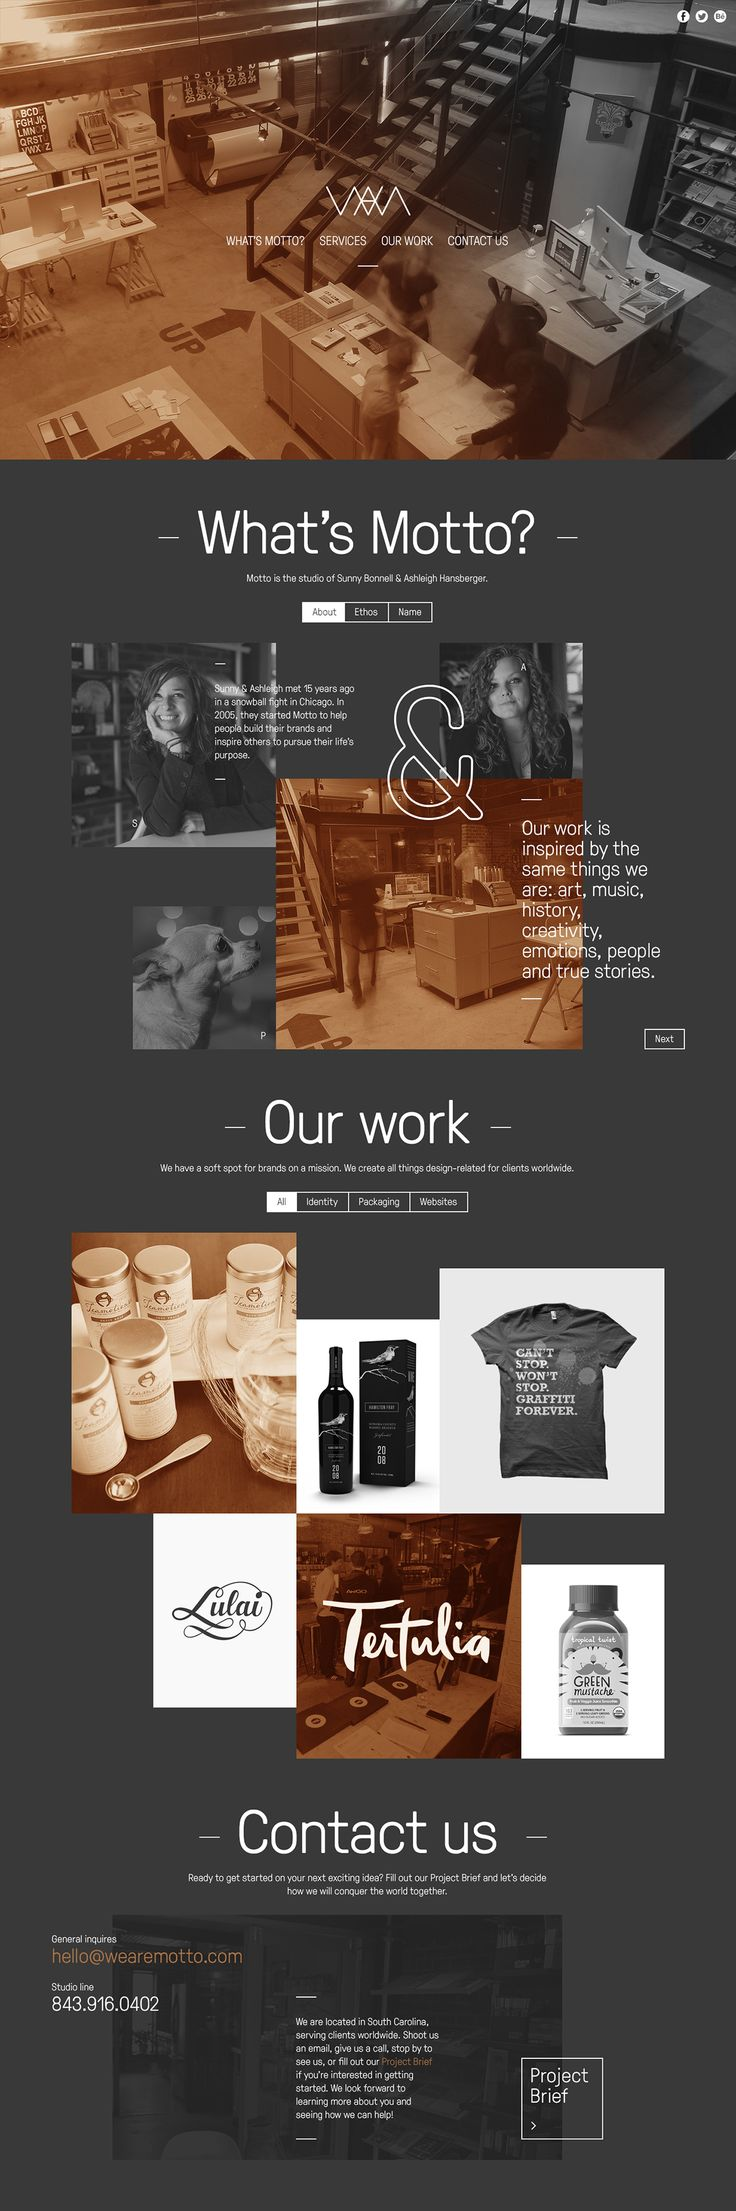 We Are Motto by Maciej Mach | #webdesign #it #web #design #layout #userinterface #website #webdesign